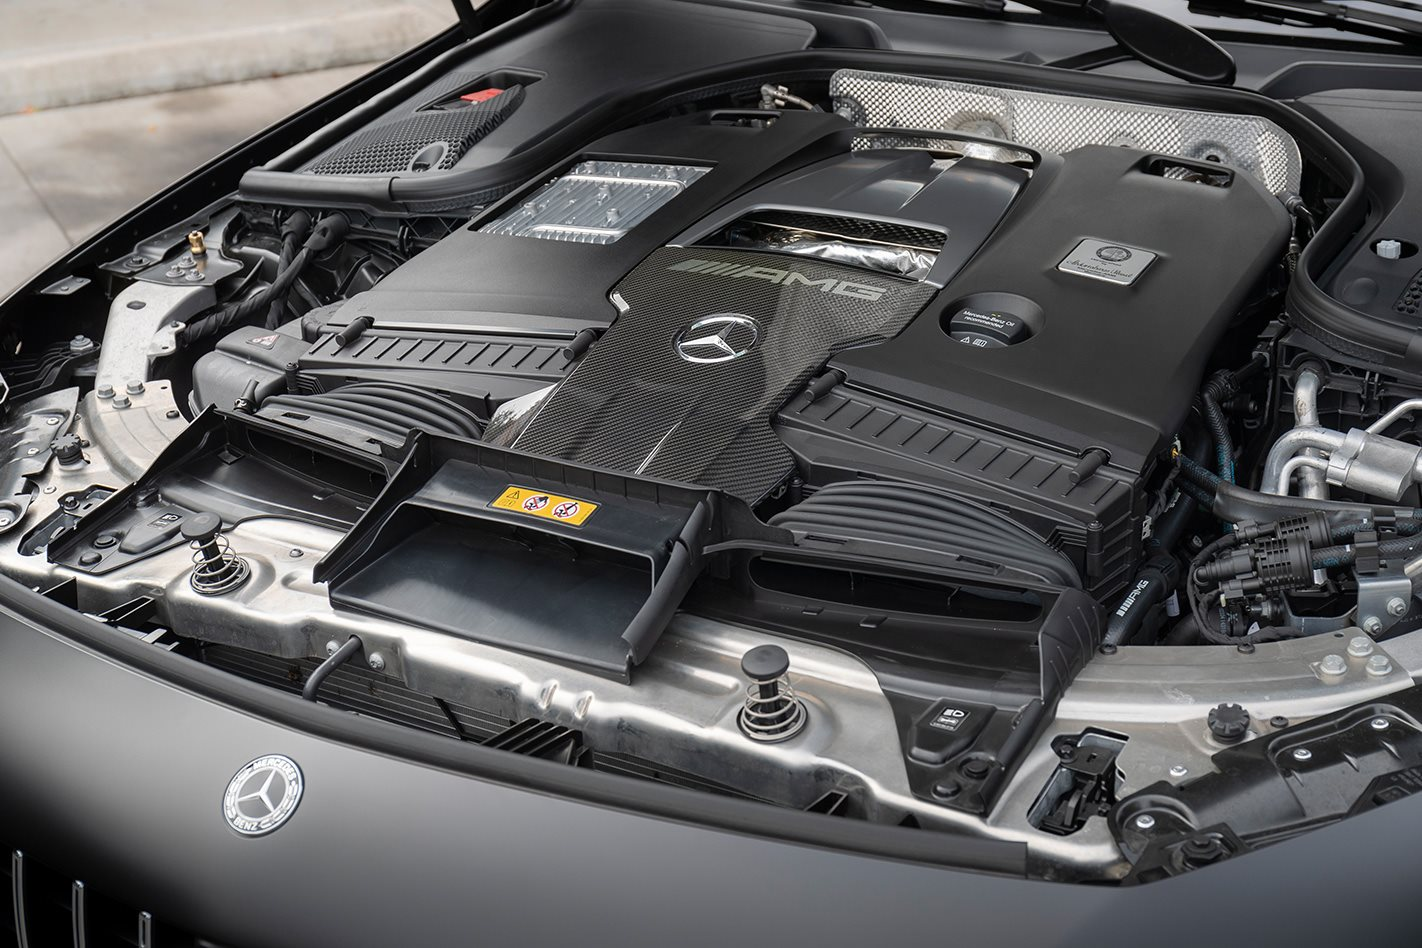 Back Gt Gallery For 4 Way Light Switch 2019 Mercedes Amg Door Coupe Review So Yes Comfortably More Than Even The Most Hardcore Of Two Line Up R 430kw 700nm That Schneider Is Strapping Into